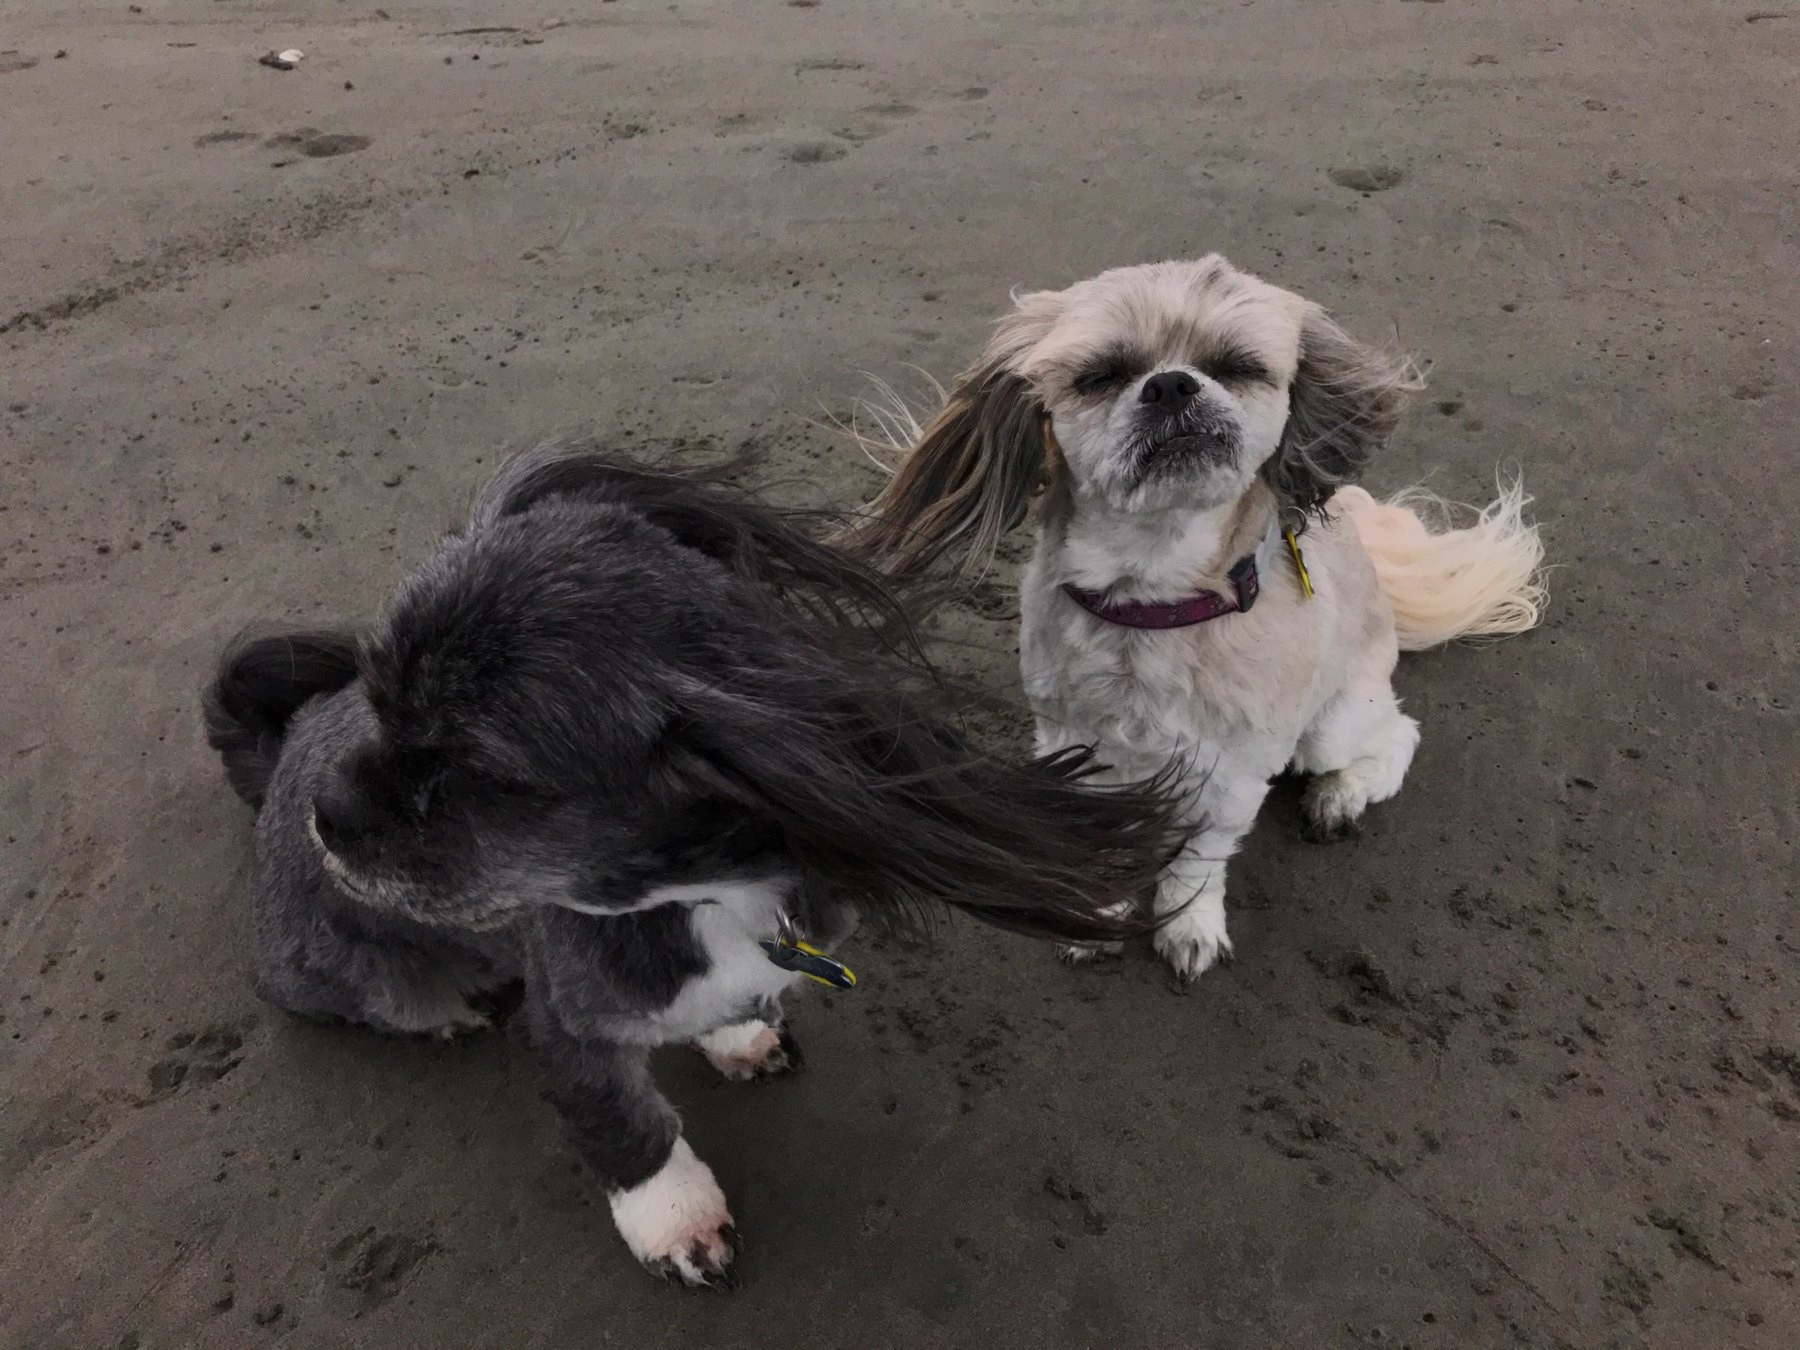 Small black dog and small white and tan dog on a dark sand beach.